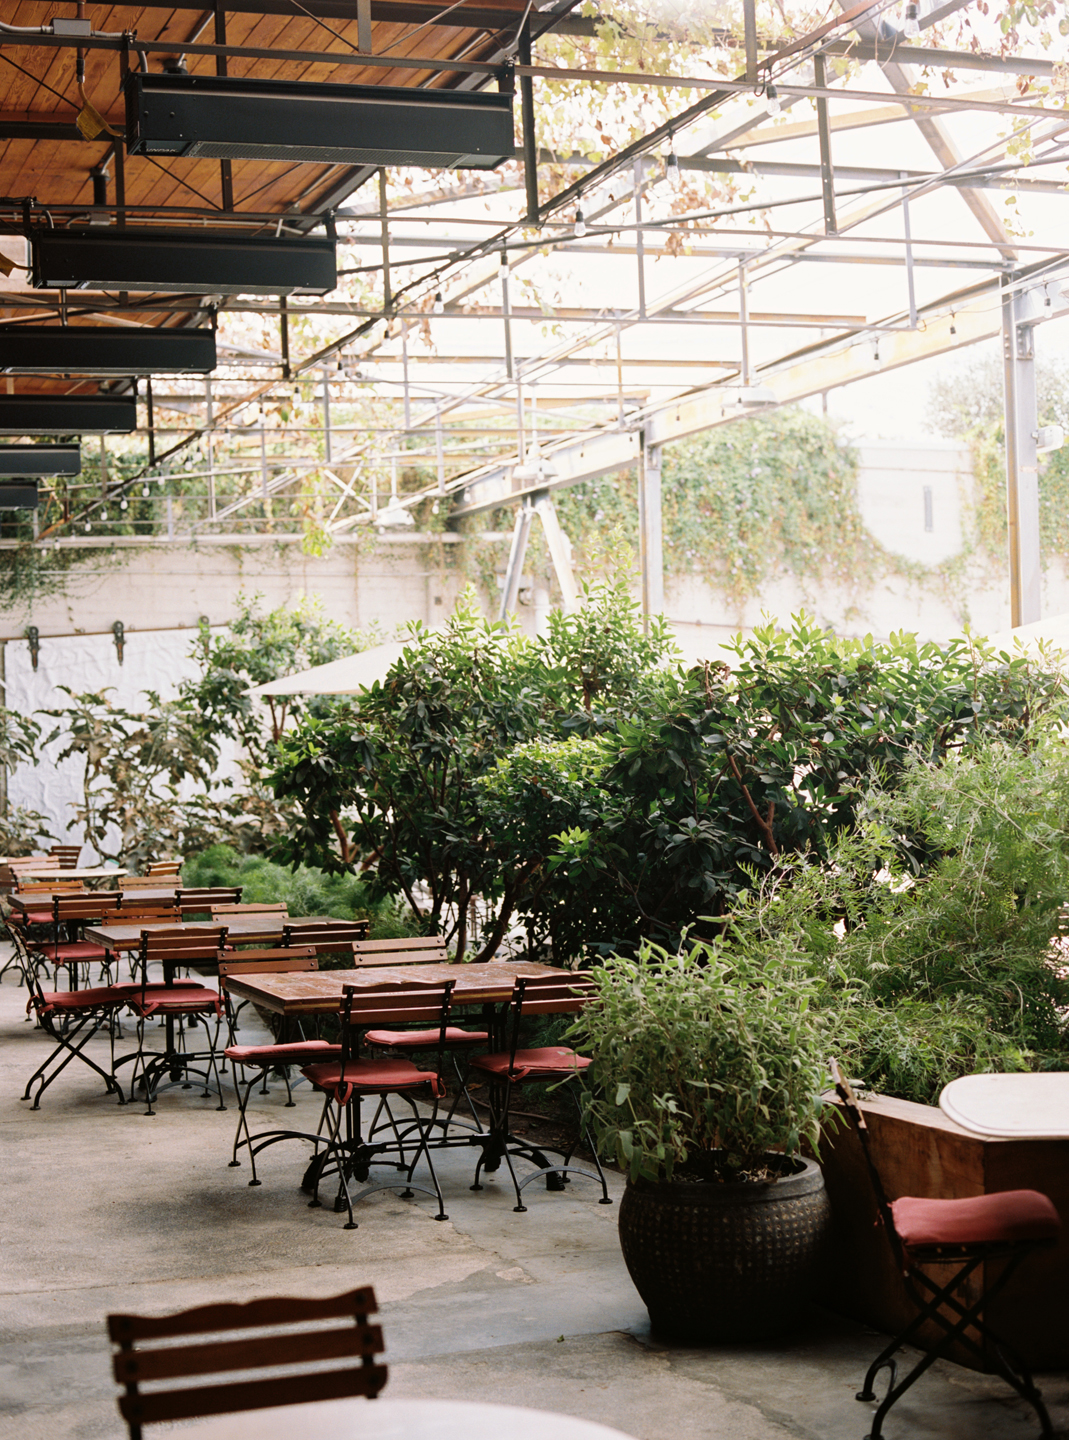 Hauser & Wirth Building Patio Seating Dining Rustic